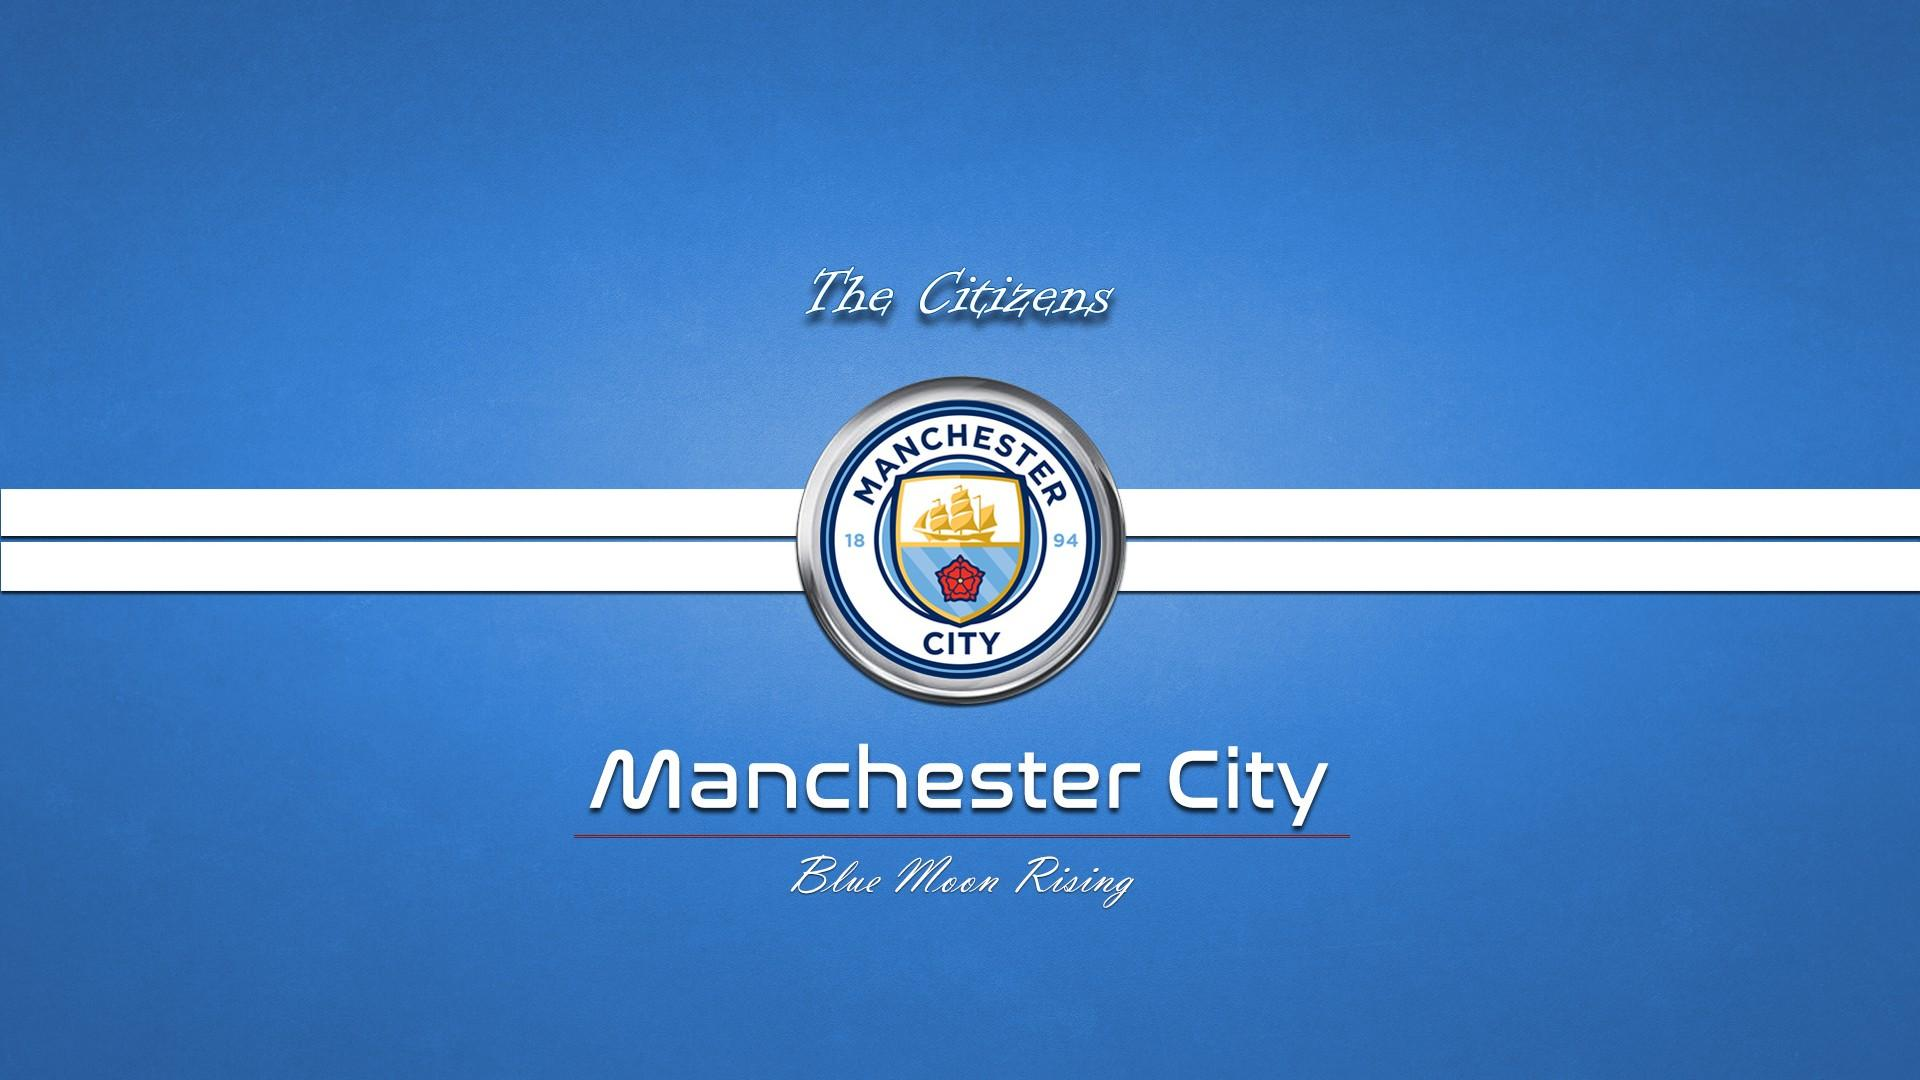 13+] Manchester City 2019 Wallpapers